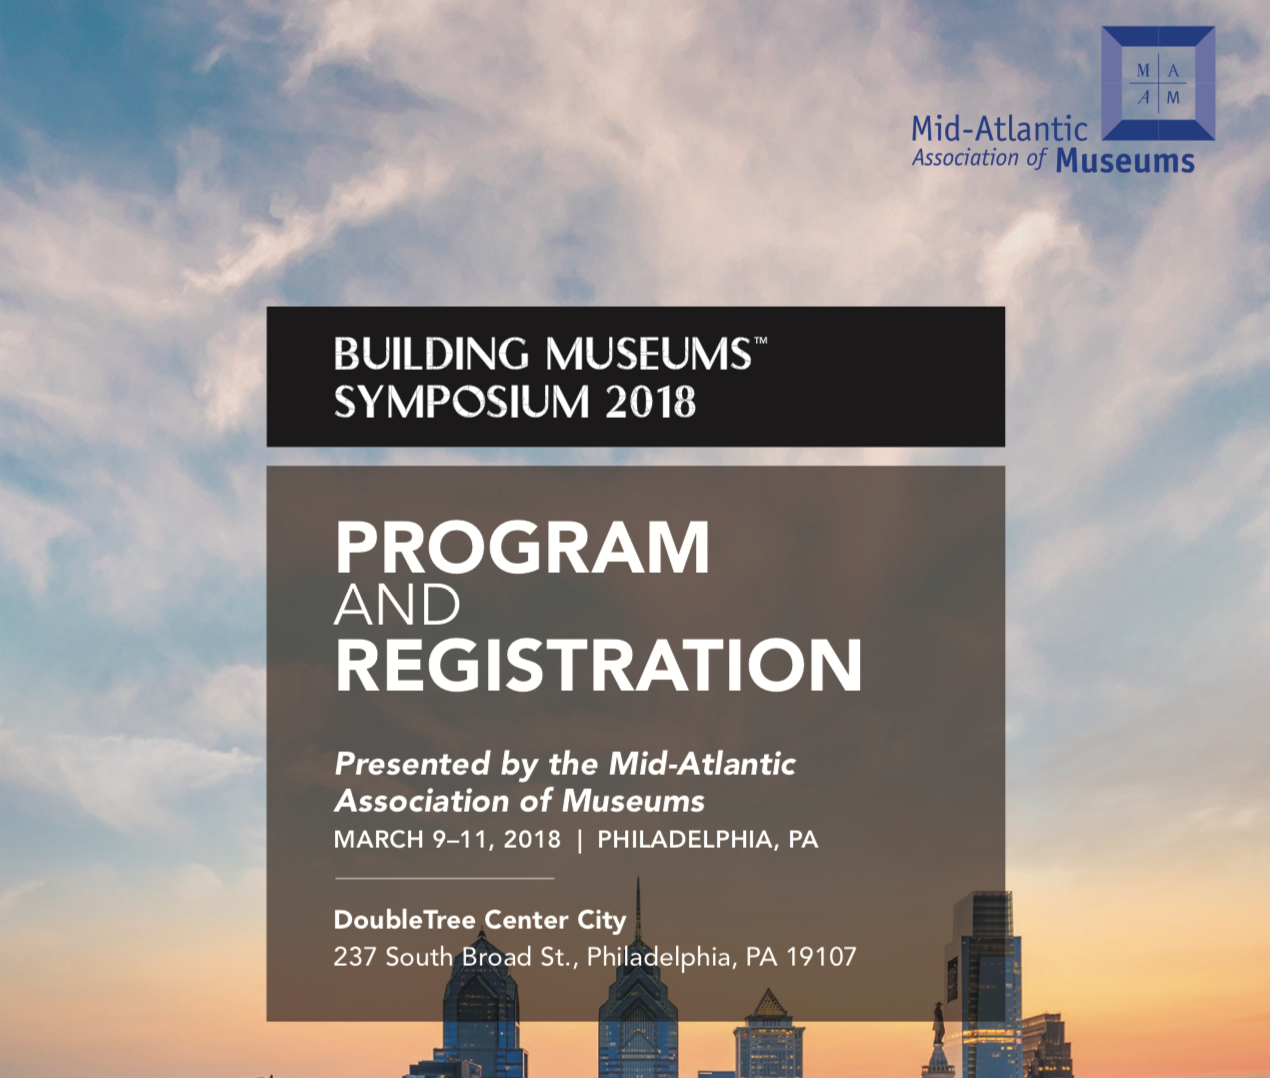 Building Museums 2018, Philadelphia, PA